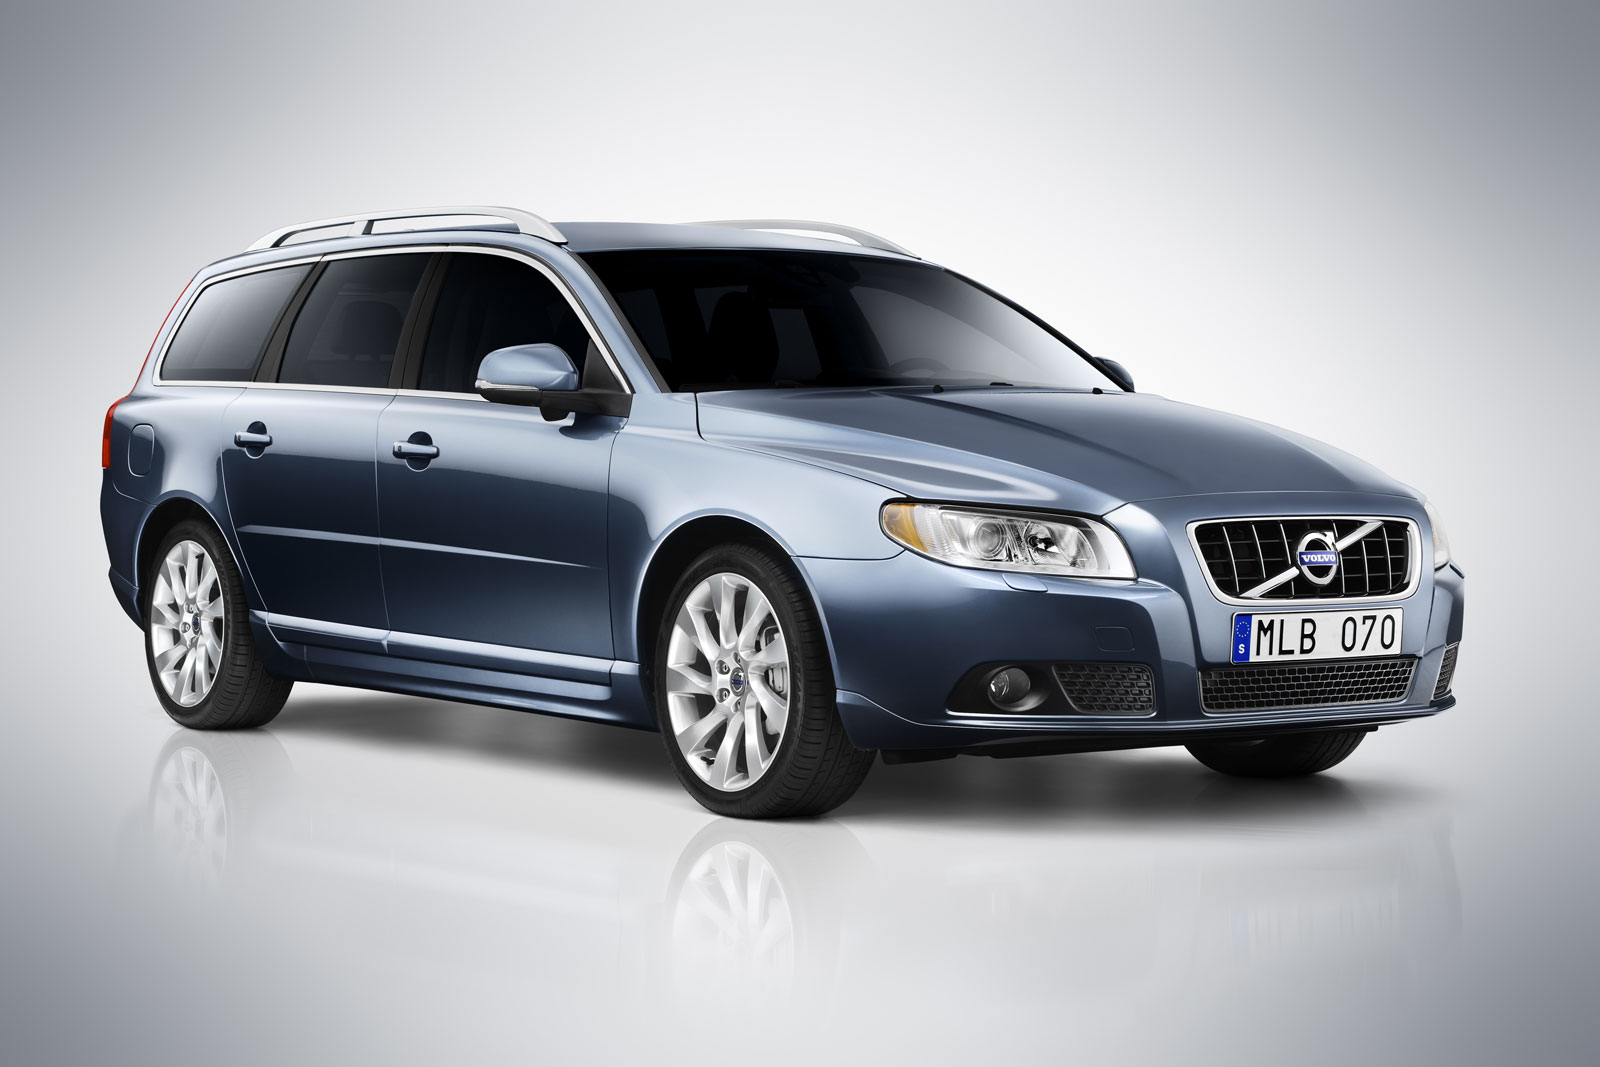 Volvo Cars 5 Volvo Upgrades V70, XC70 and S80 Variants